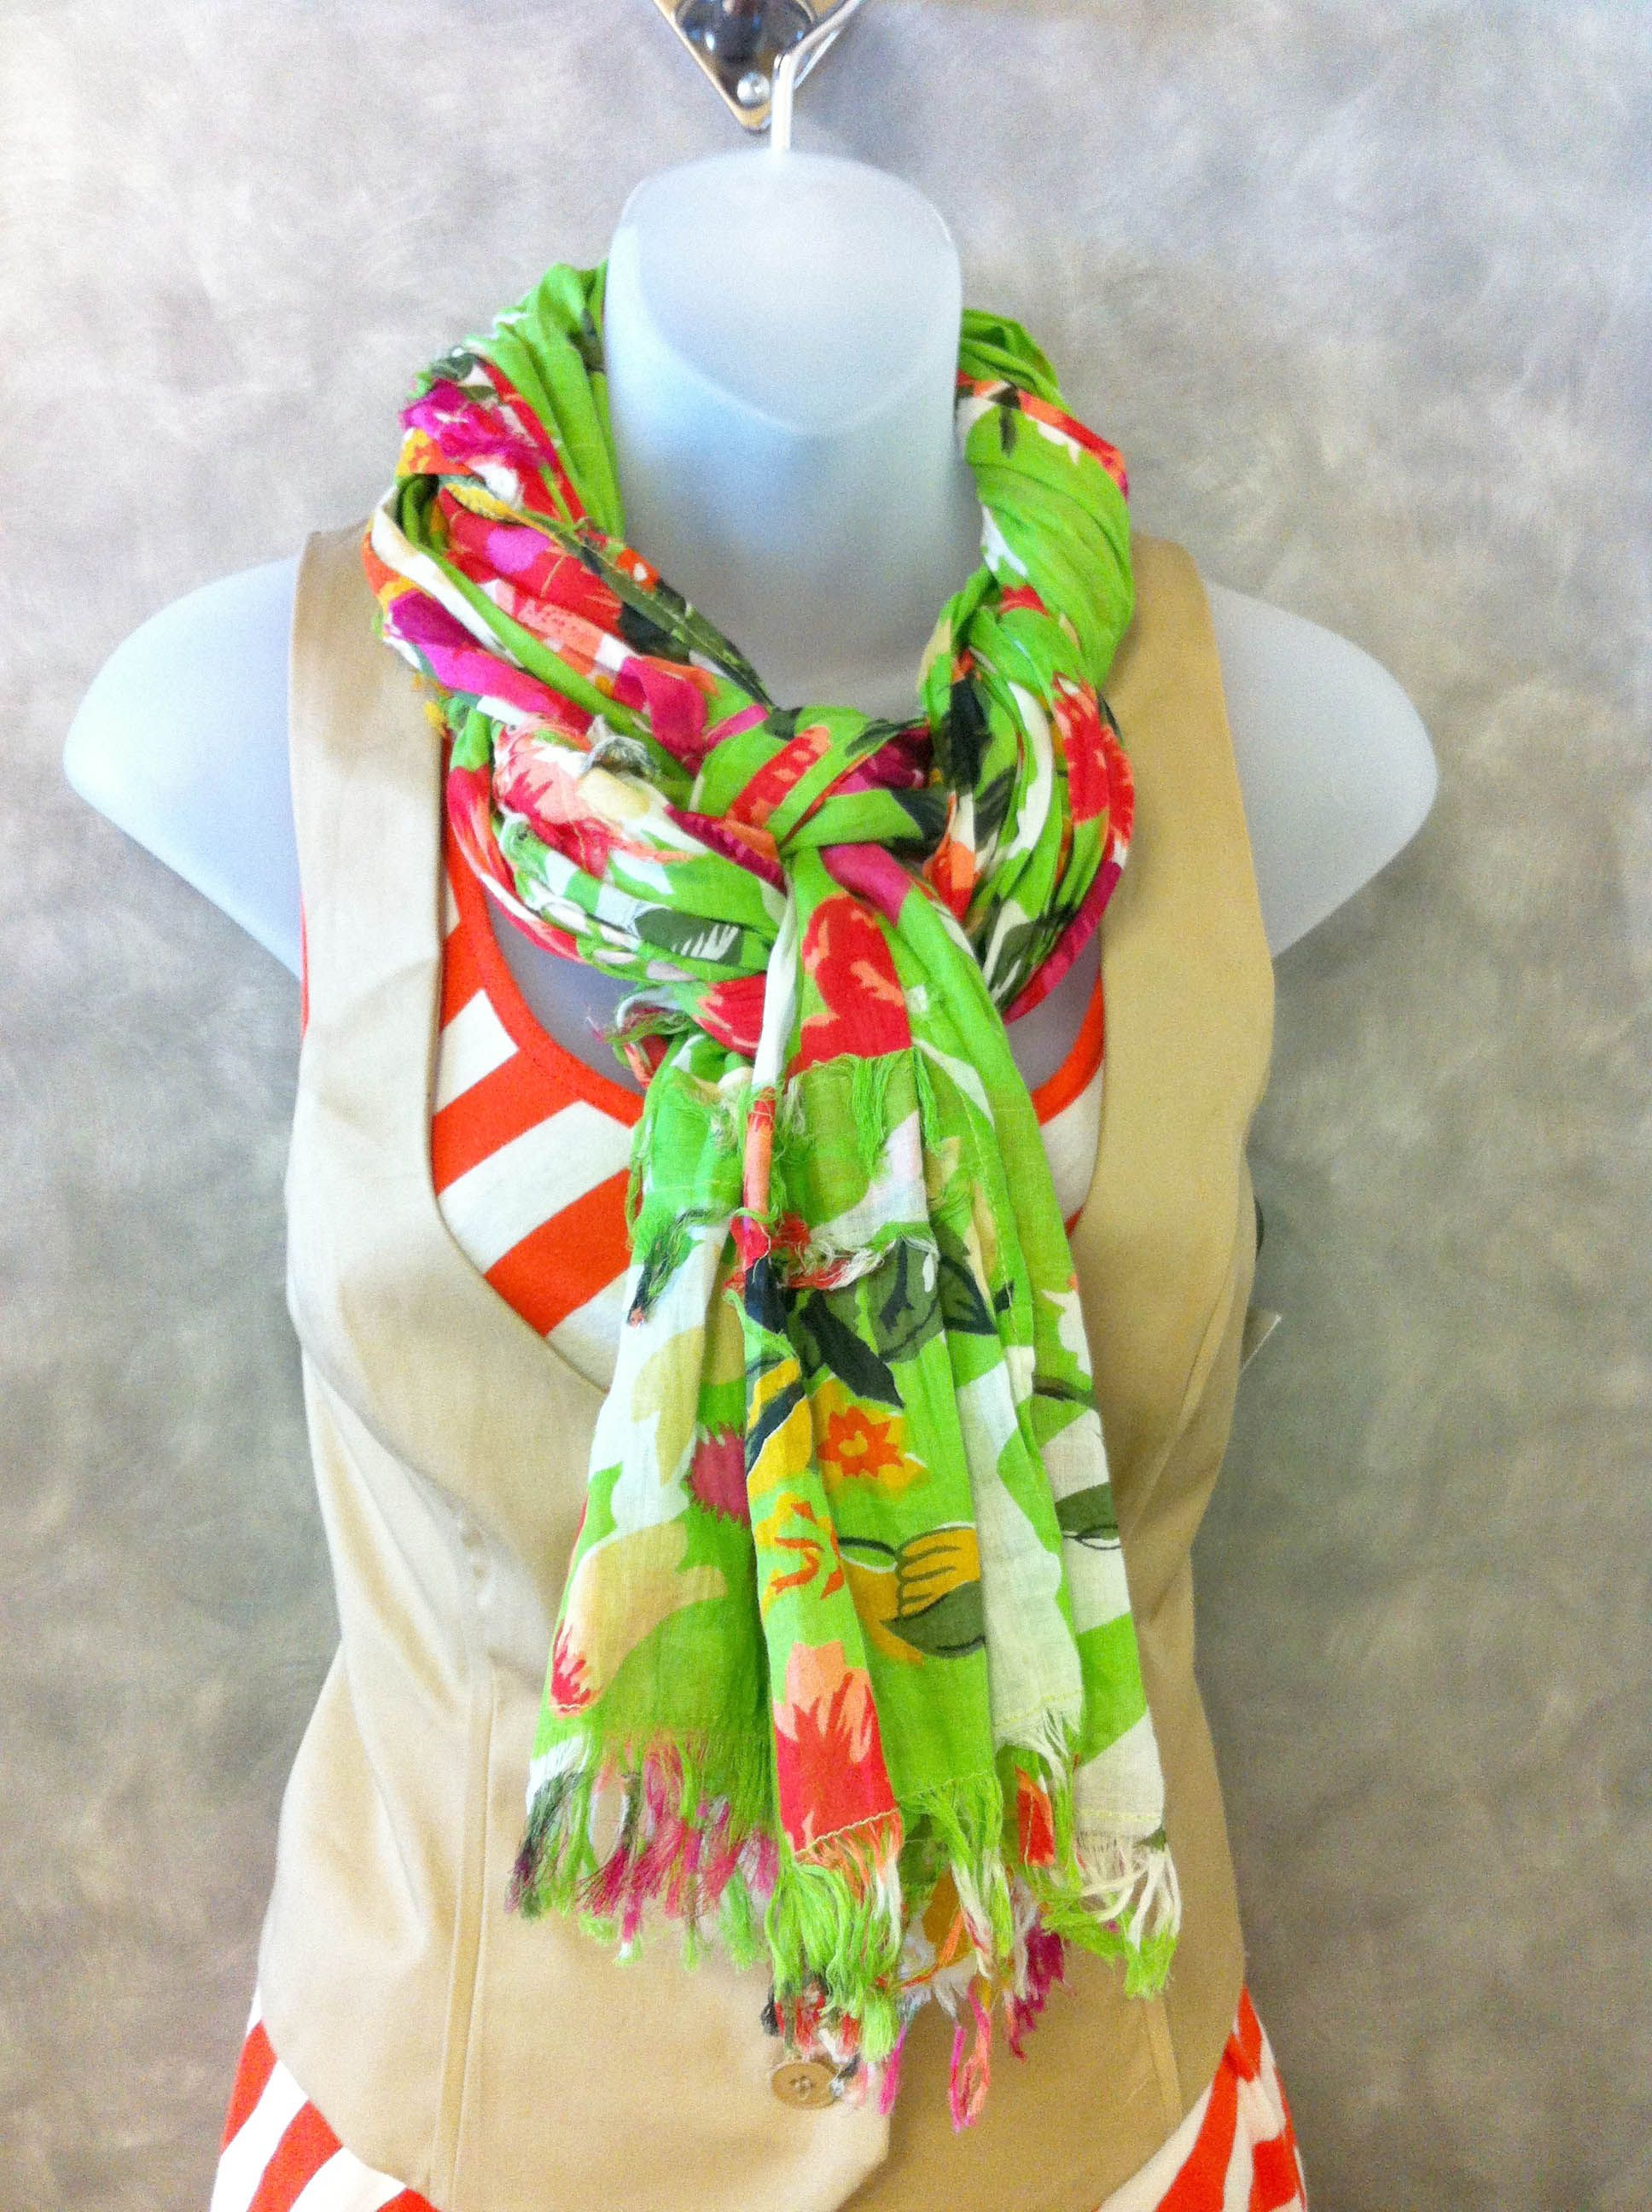 Ask our Clothes Mentor associates for this scarf knot!